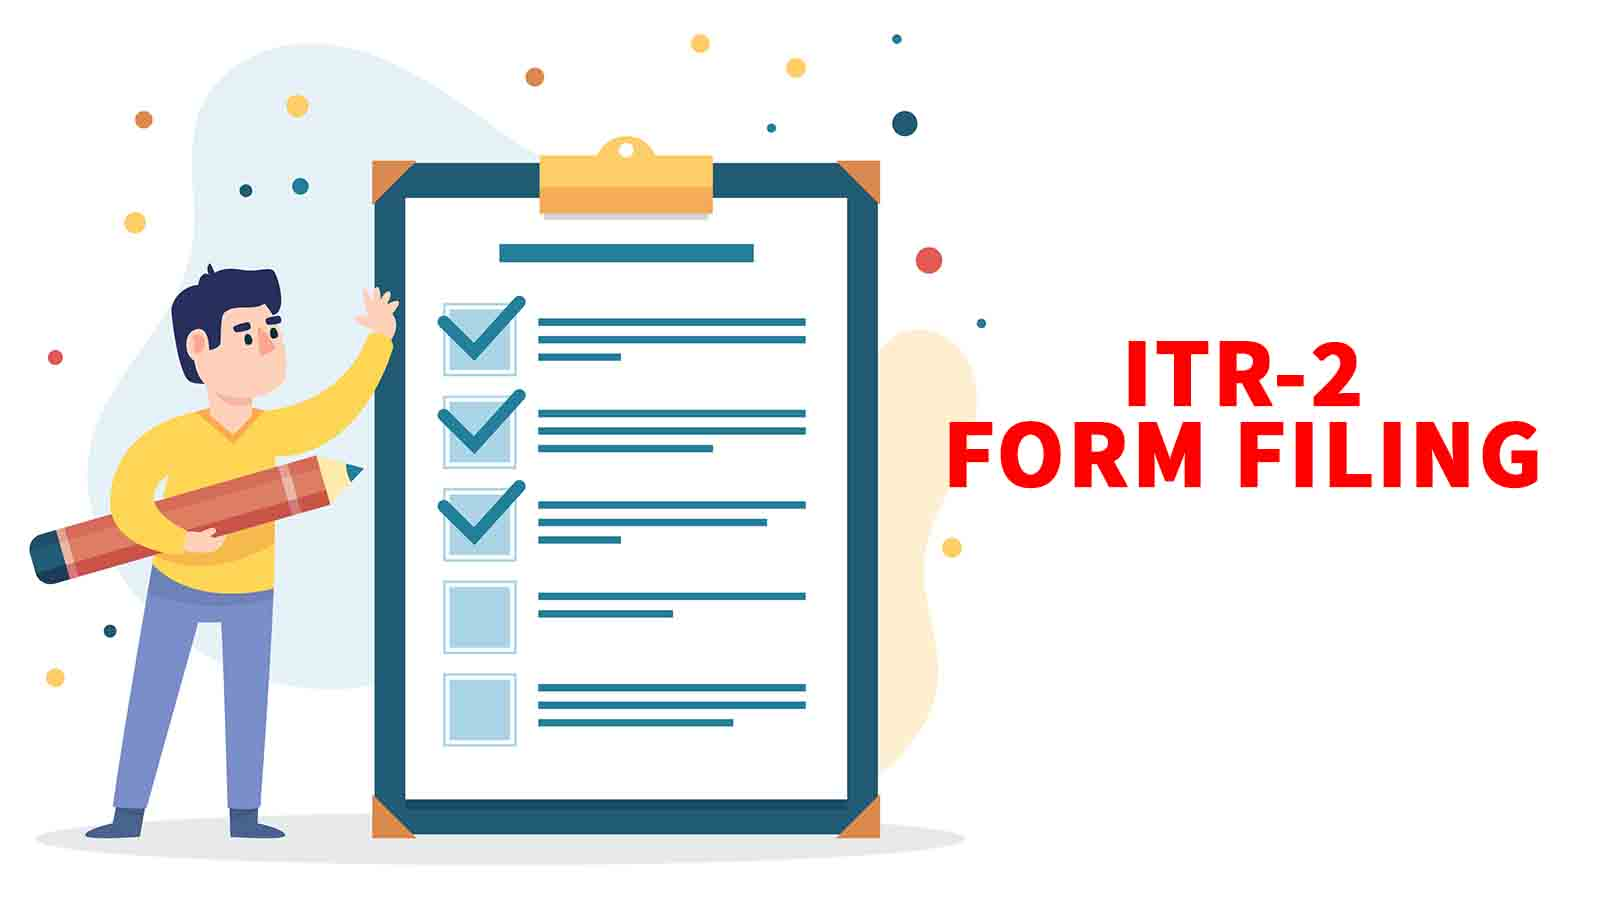 ITR-2 available on its e-Filing portal